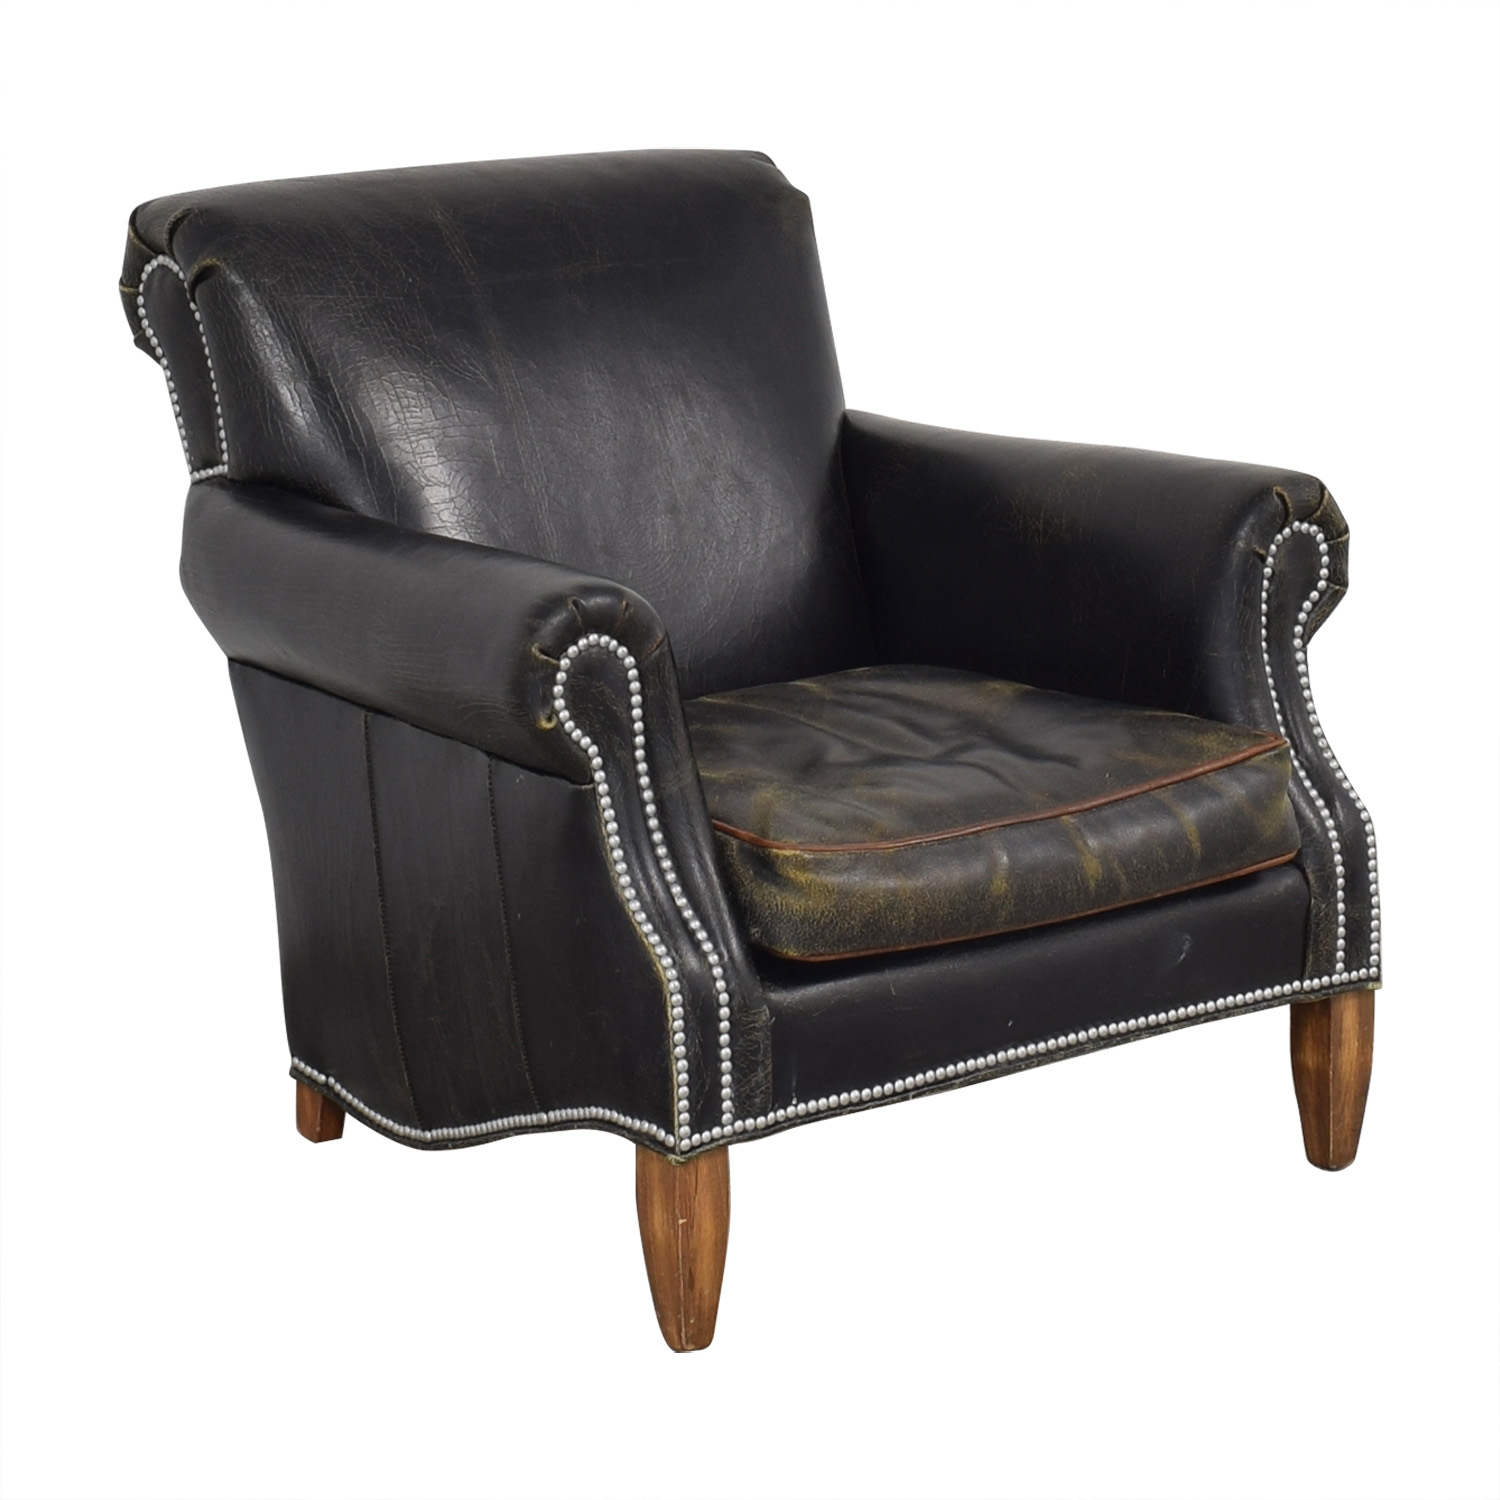 Old Hickory Tannery Old Hickory Tannery Distressed Club Chair black and brown